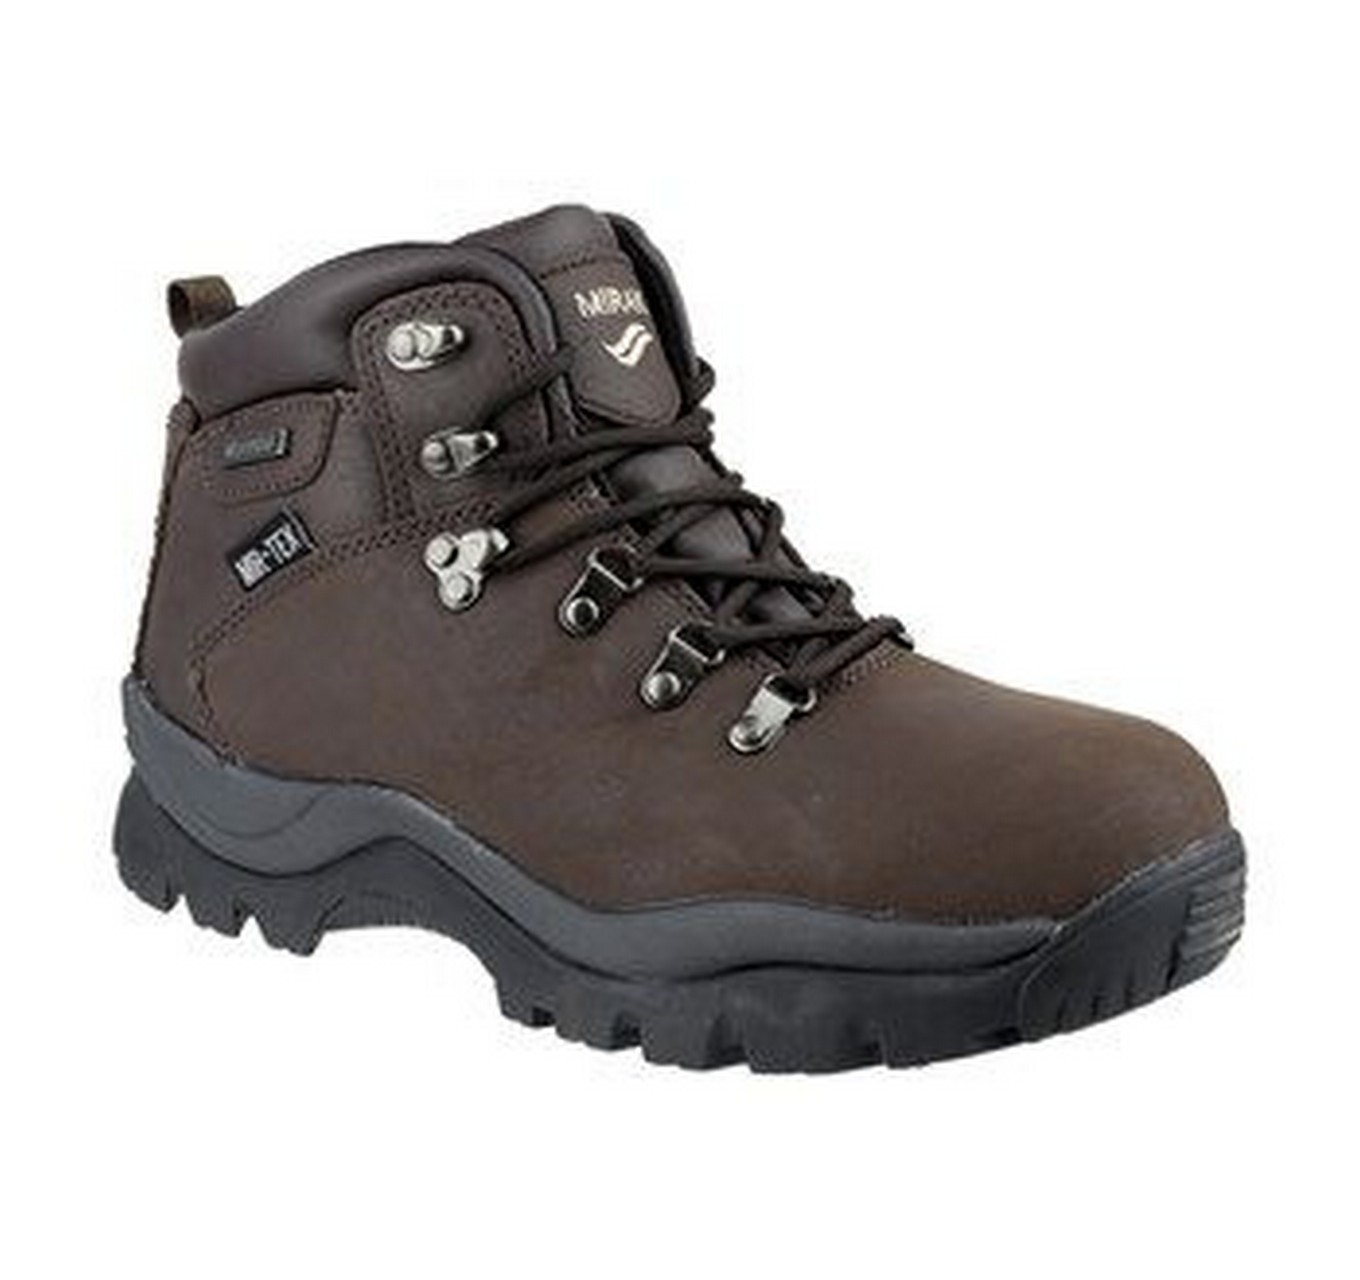 Nebraska Hiking Boot Brown 9